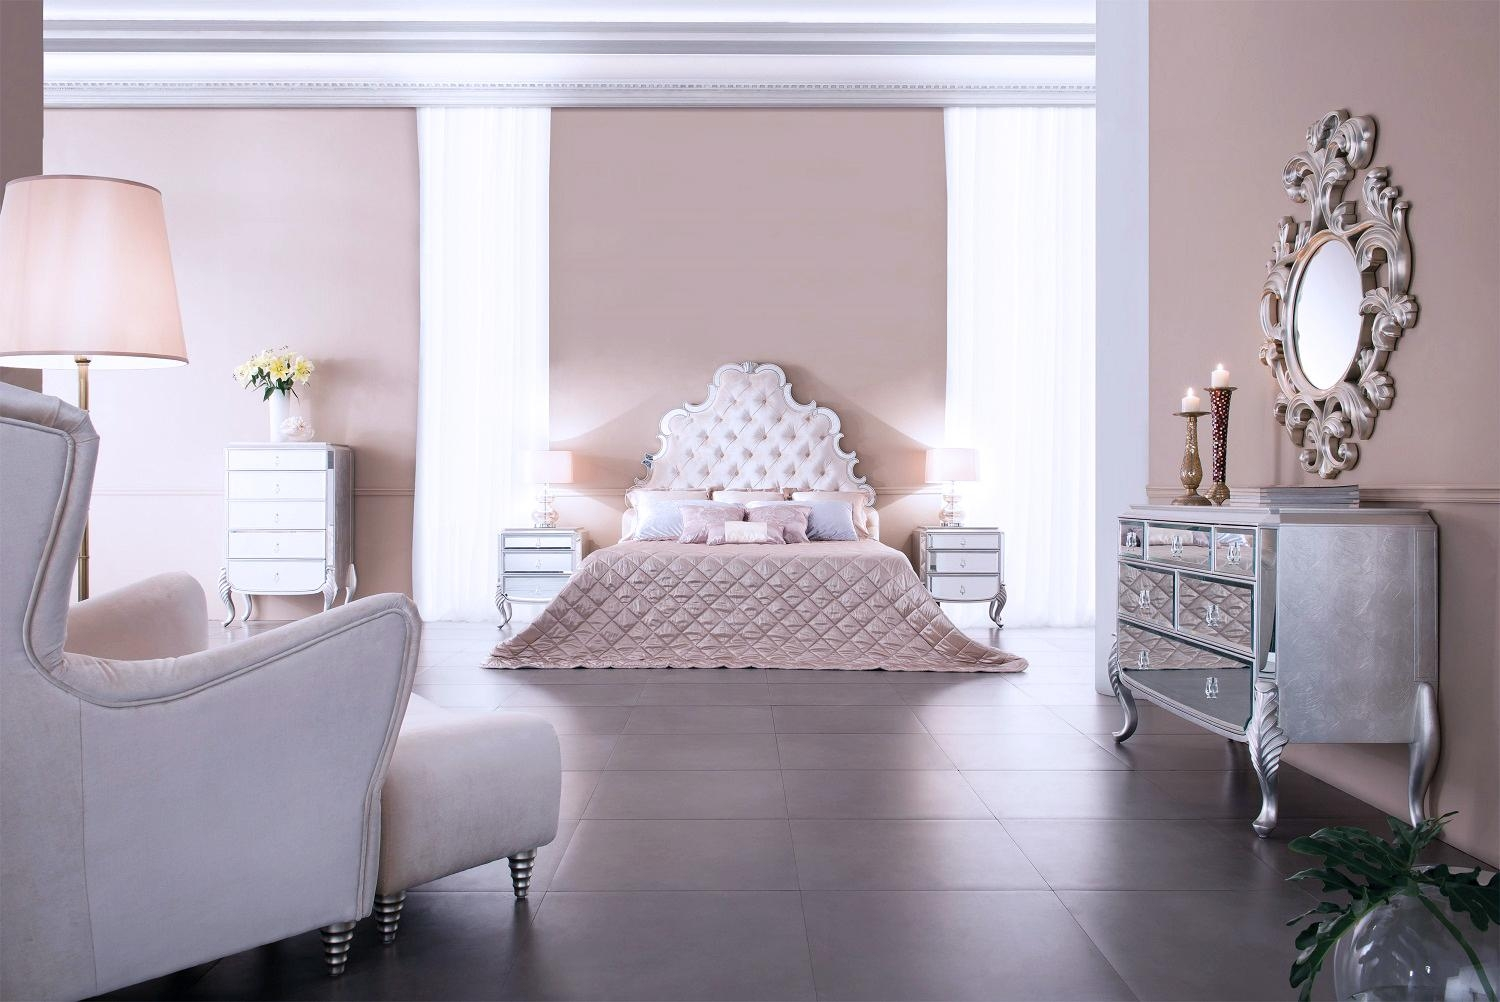 20 Collection Of Decorative Wall Mirrors For Bedroom